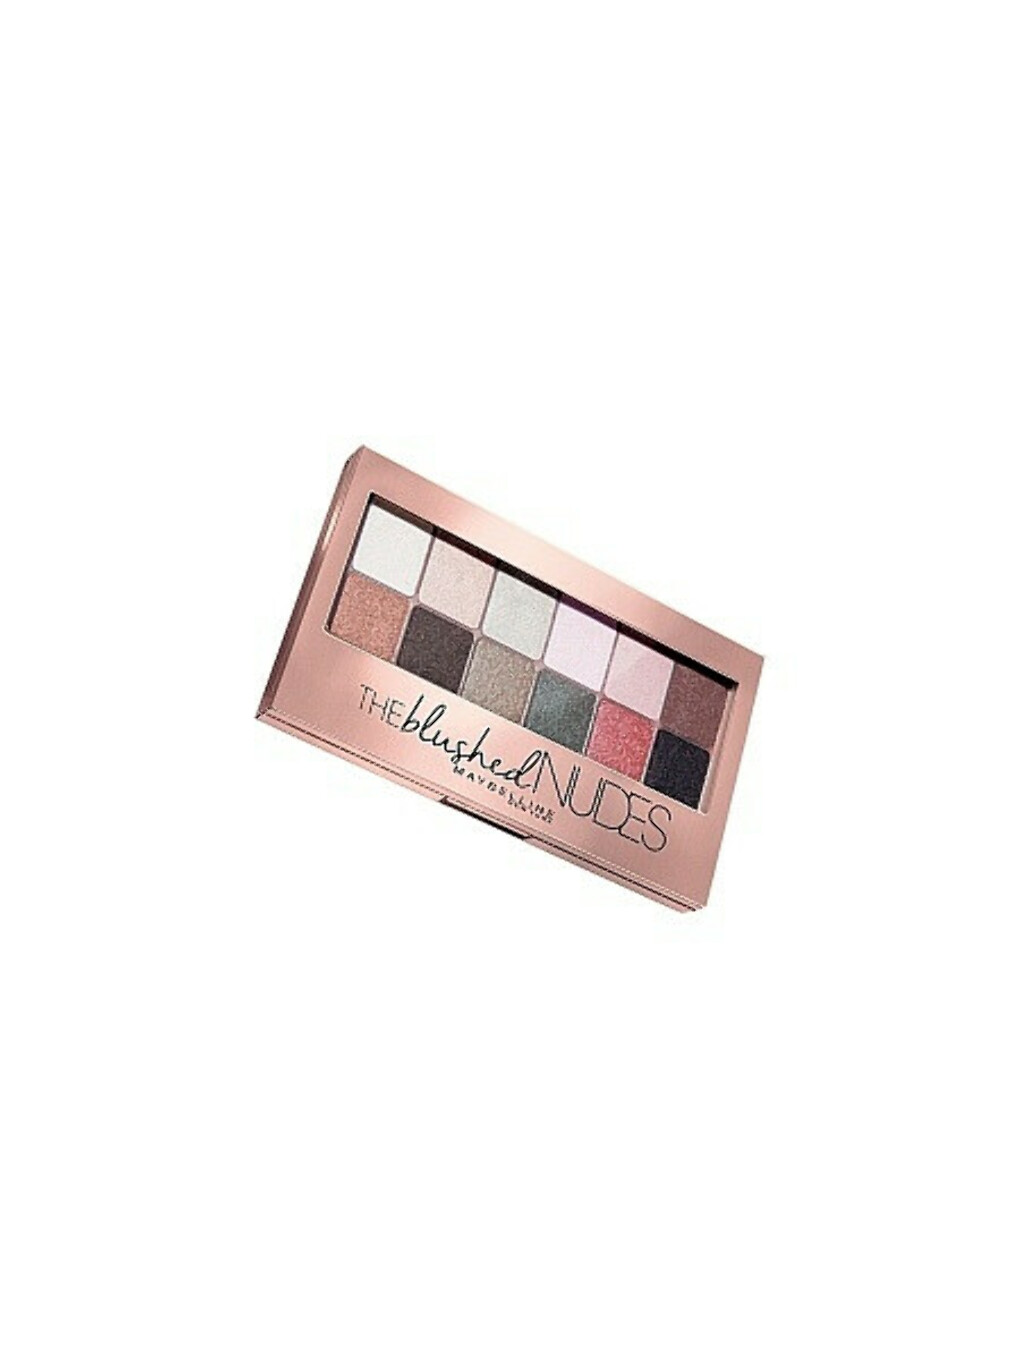 Blushed Nudes, Maybelline New York